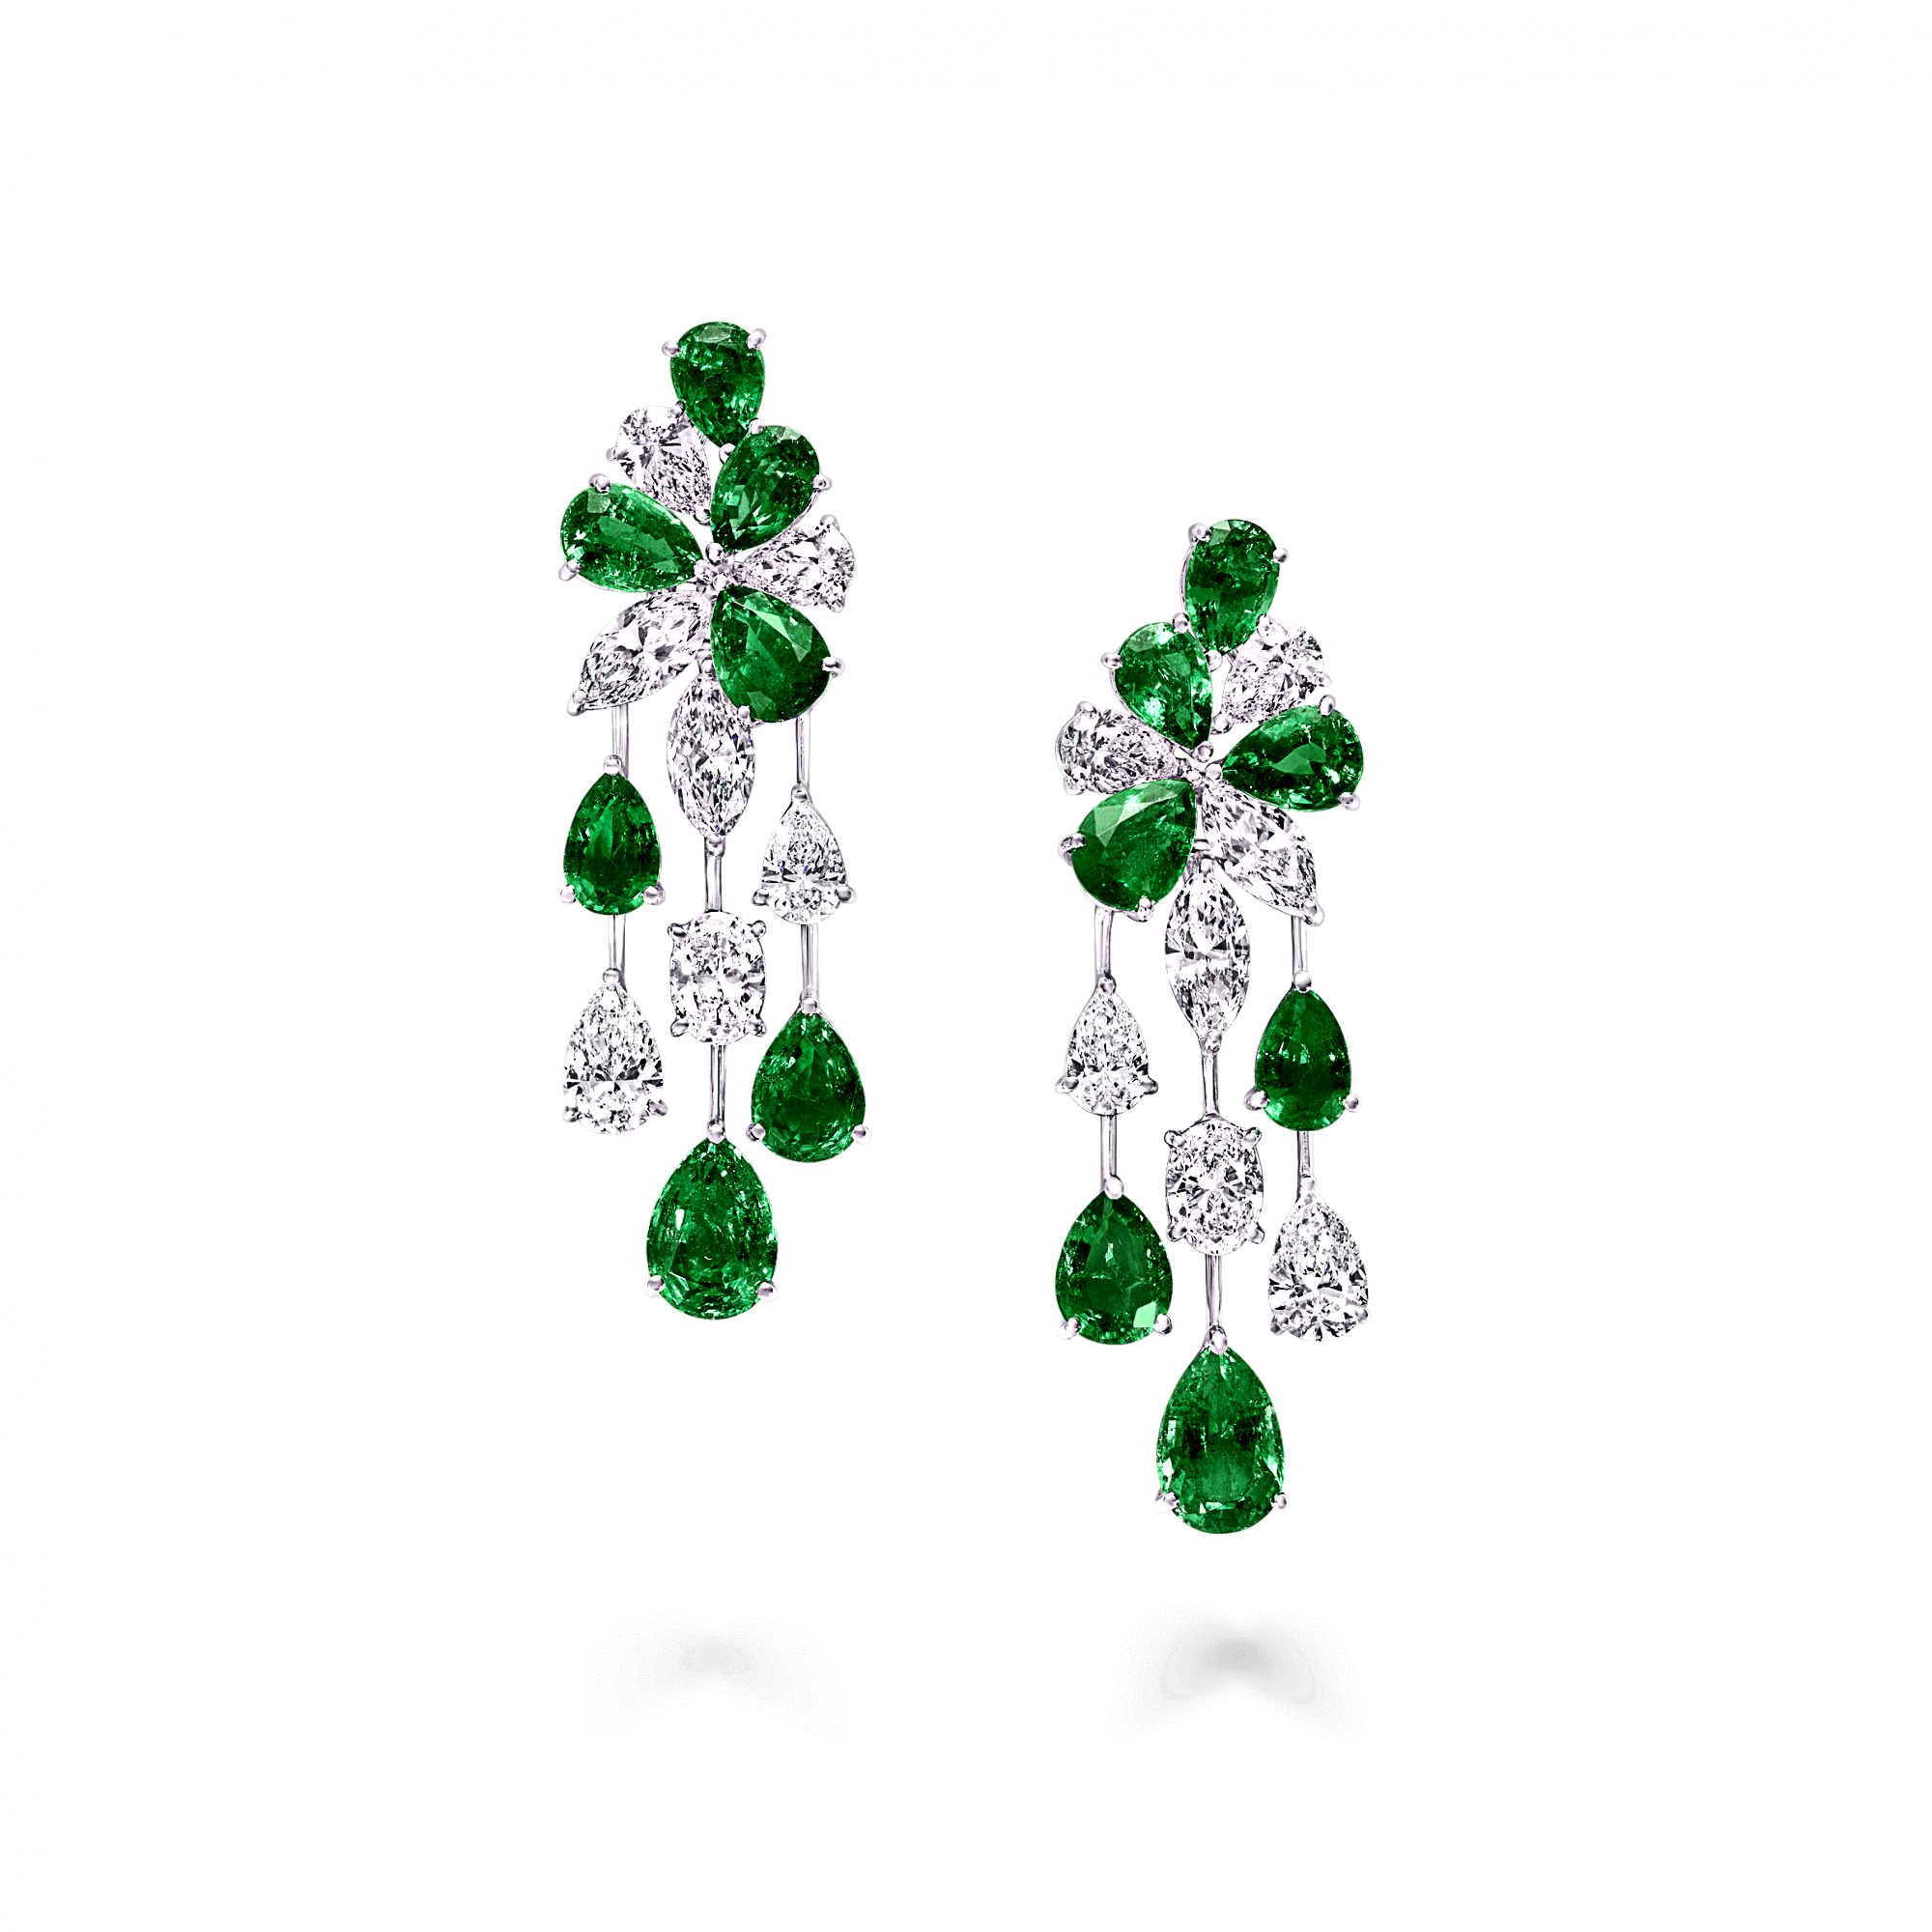 Discover Our Extraordinary Emerald And Diamond Earrings From The High Jewellery Collection At Graff Enter A World Of Unrivalled Rarity